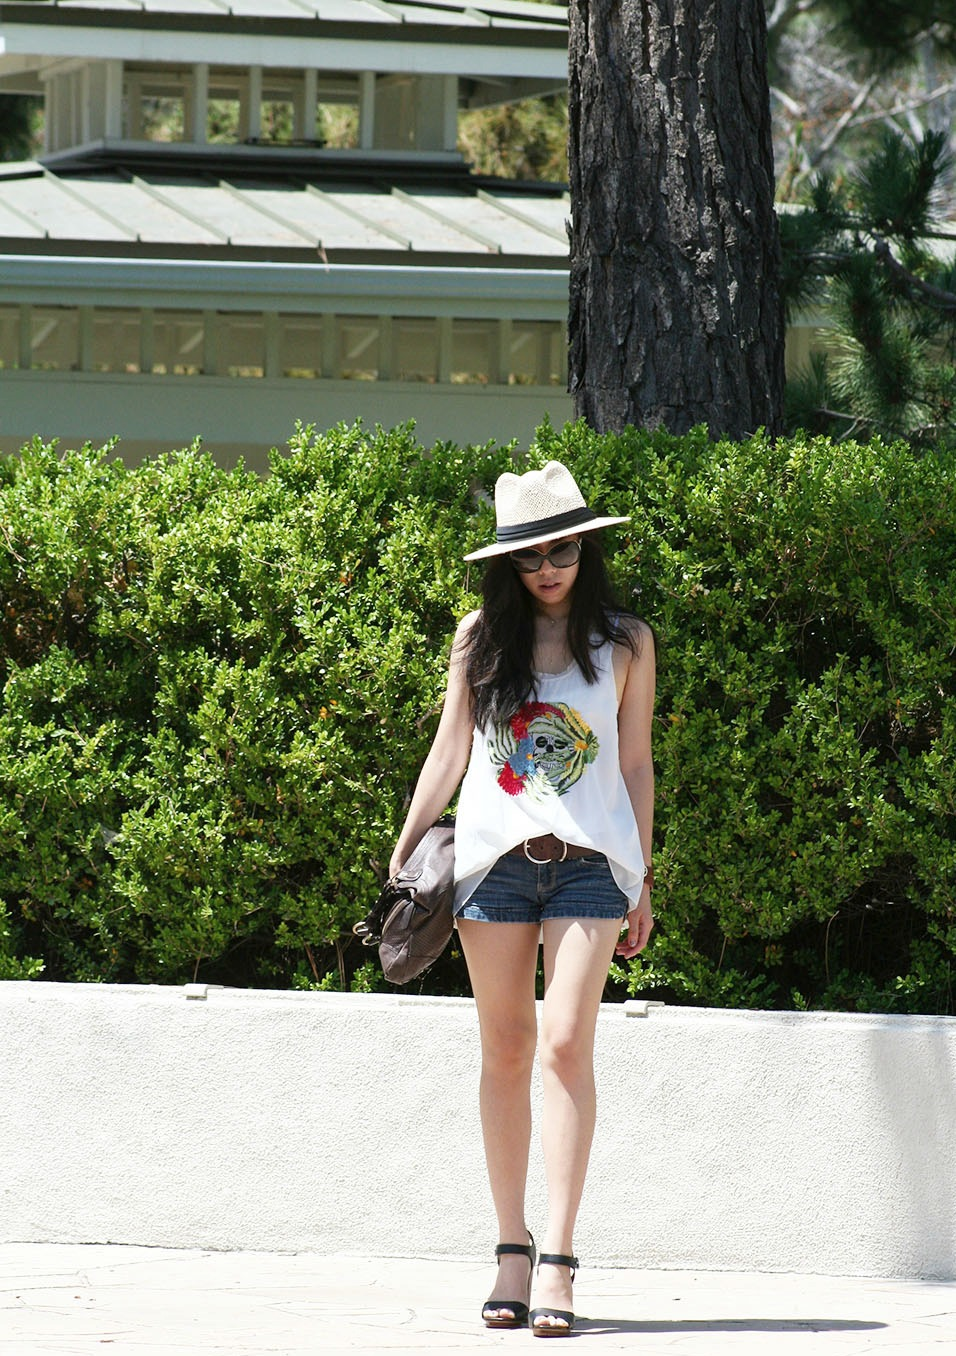 Adrienne Nguyen_Invictus_Girly_Bohemian Summer Outfit_Casual Boho Outfit with Denim Shorts